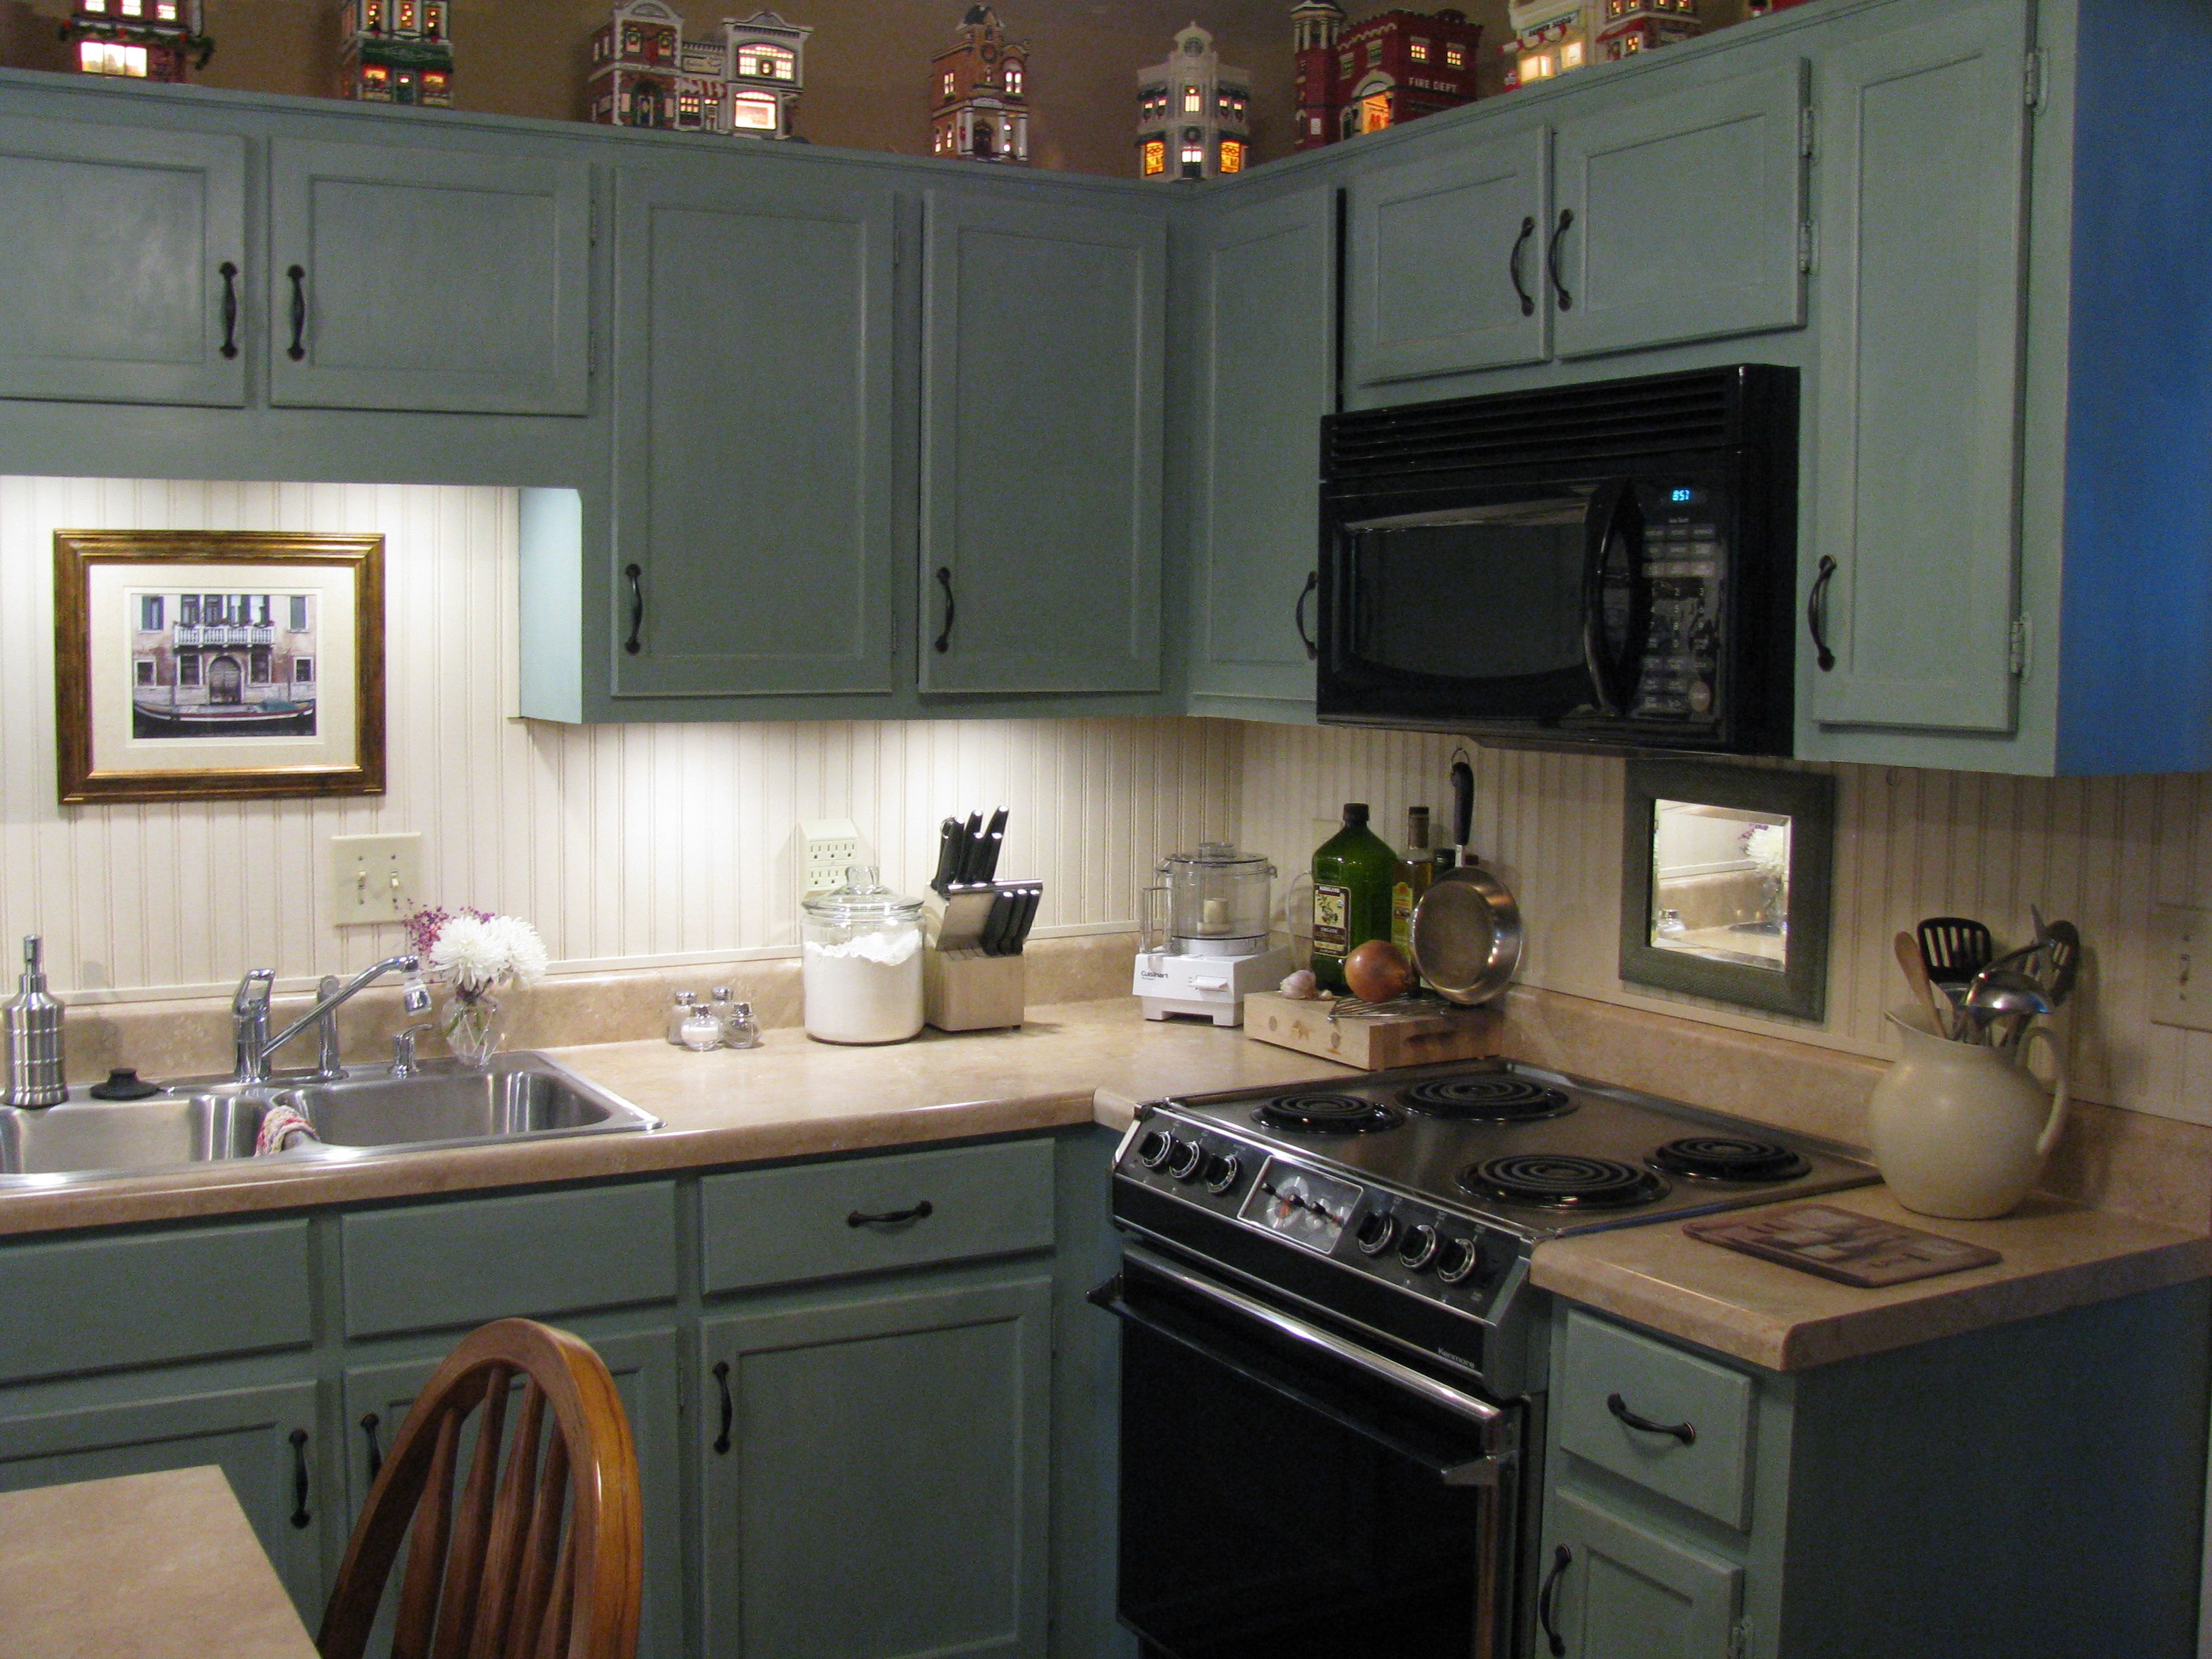 Uncategorized Duck Egg Blue Kitchen Appliances wow my old ugly cheap oak cabinets never looked so good kitchen reno